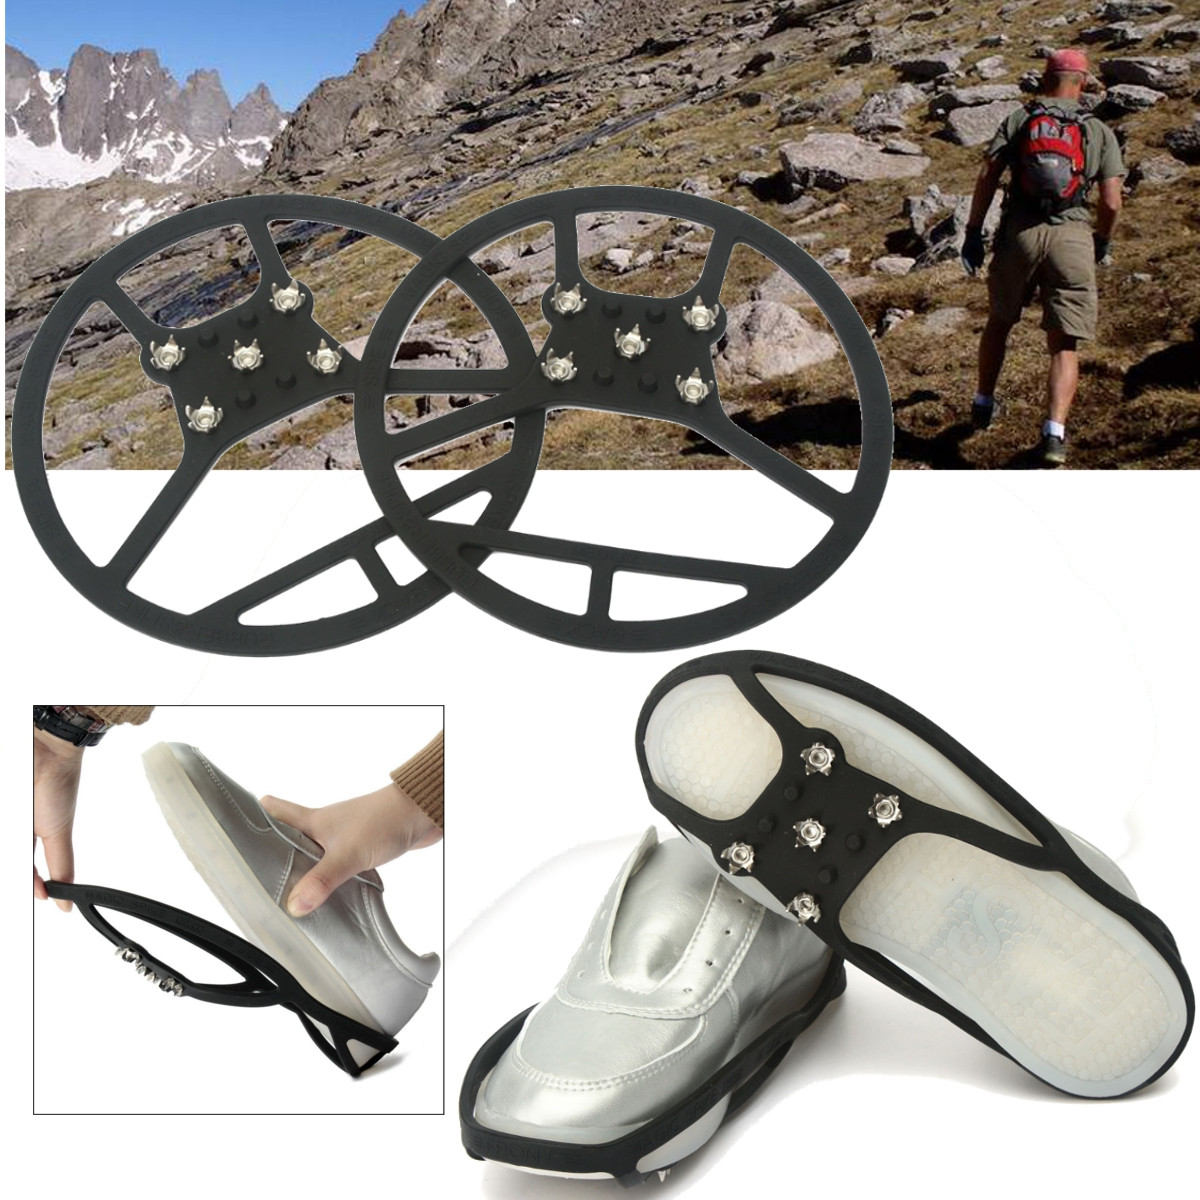 BSAID1Pair Silica Gel Round Ice Grippers, 5 Spikes Anti-Slip Elastic Snow Ice Mud Crampons Outside Overshoes Boots Shoe Gripper bsaid1pair silic ice grippers snow ice climbing anti slip spikes grips crampon cleat 5 stud shoes cover hiking trekking slipper